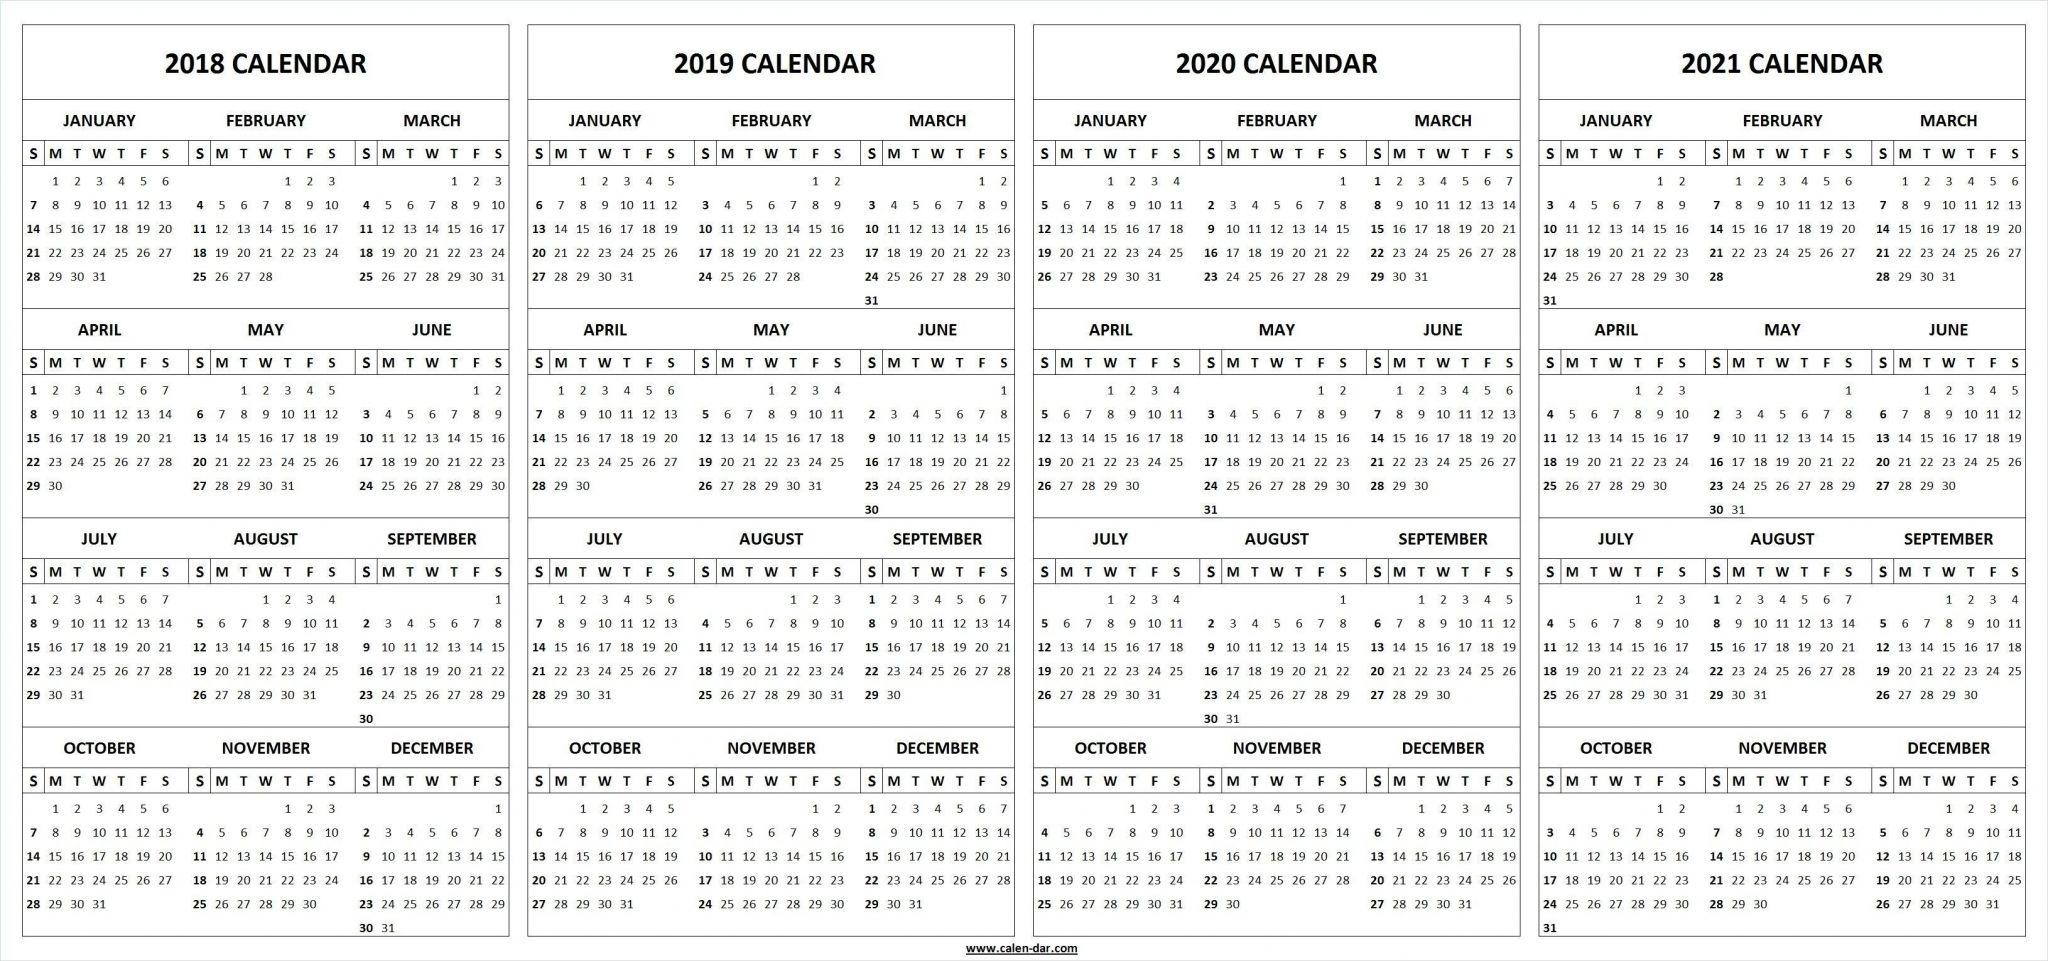 2019 Calendar Sri Lanka And Sri Lanka Calendar 2019 Image. Template 2020 Calendar Sri Lanka With Holidays